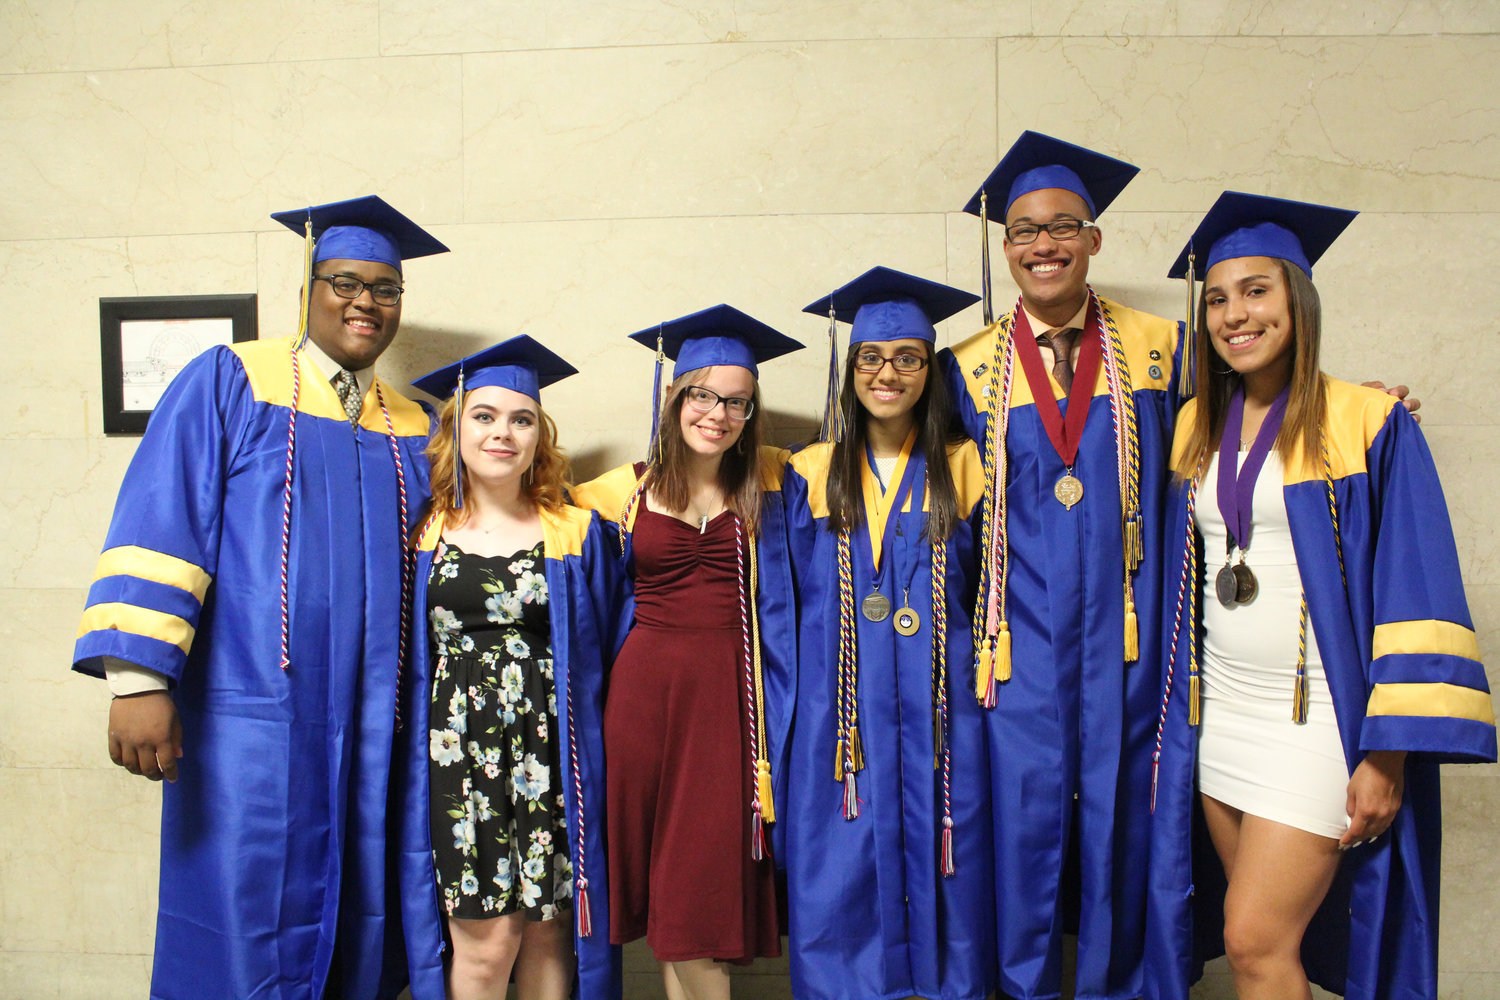 Members of the Youth and Government club Elijah Smith, Valerie Wilmath, Stephanie Finsterbush, Aayushi Patel, Terrance Jefferson and Jocilyn Koser pose before MAHS graduation June 4.